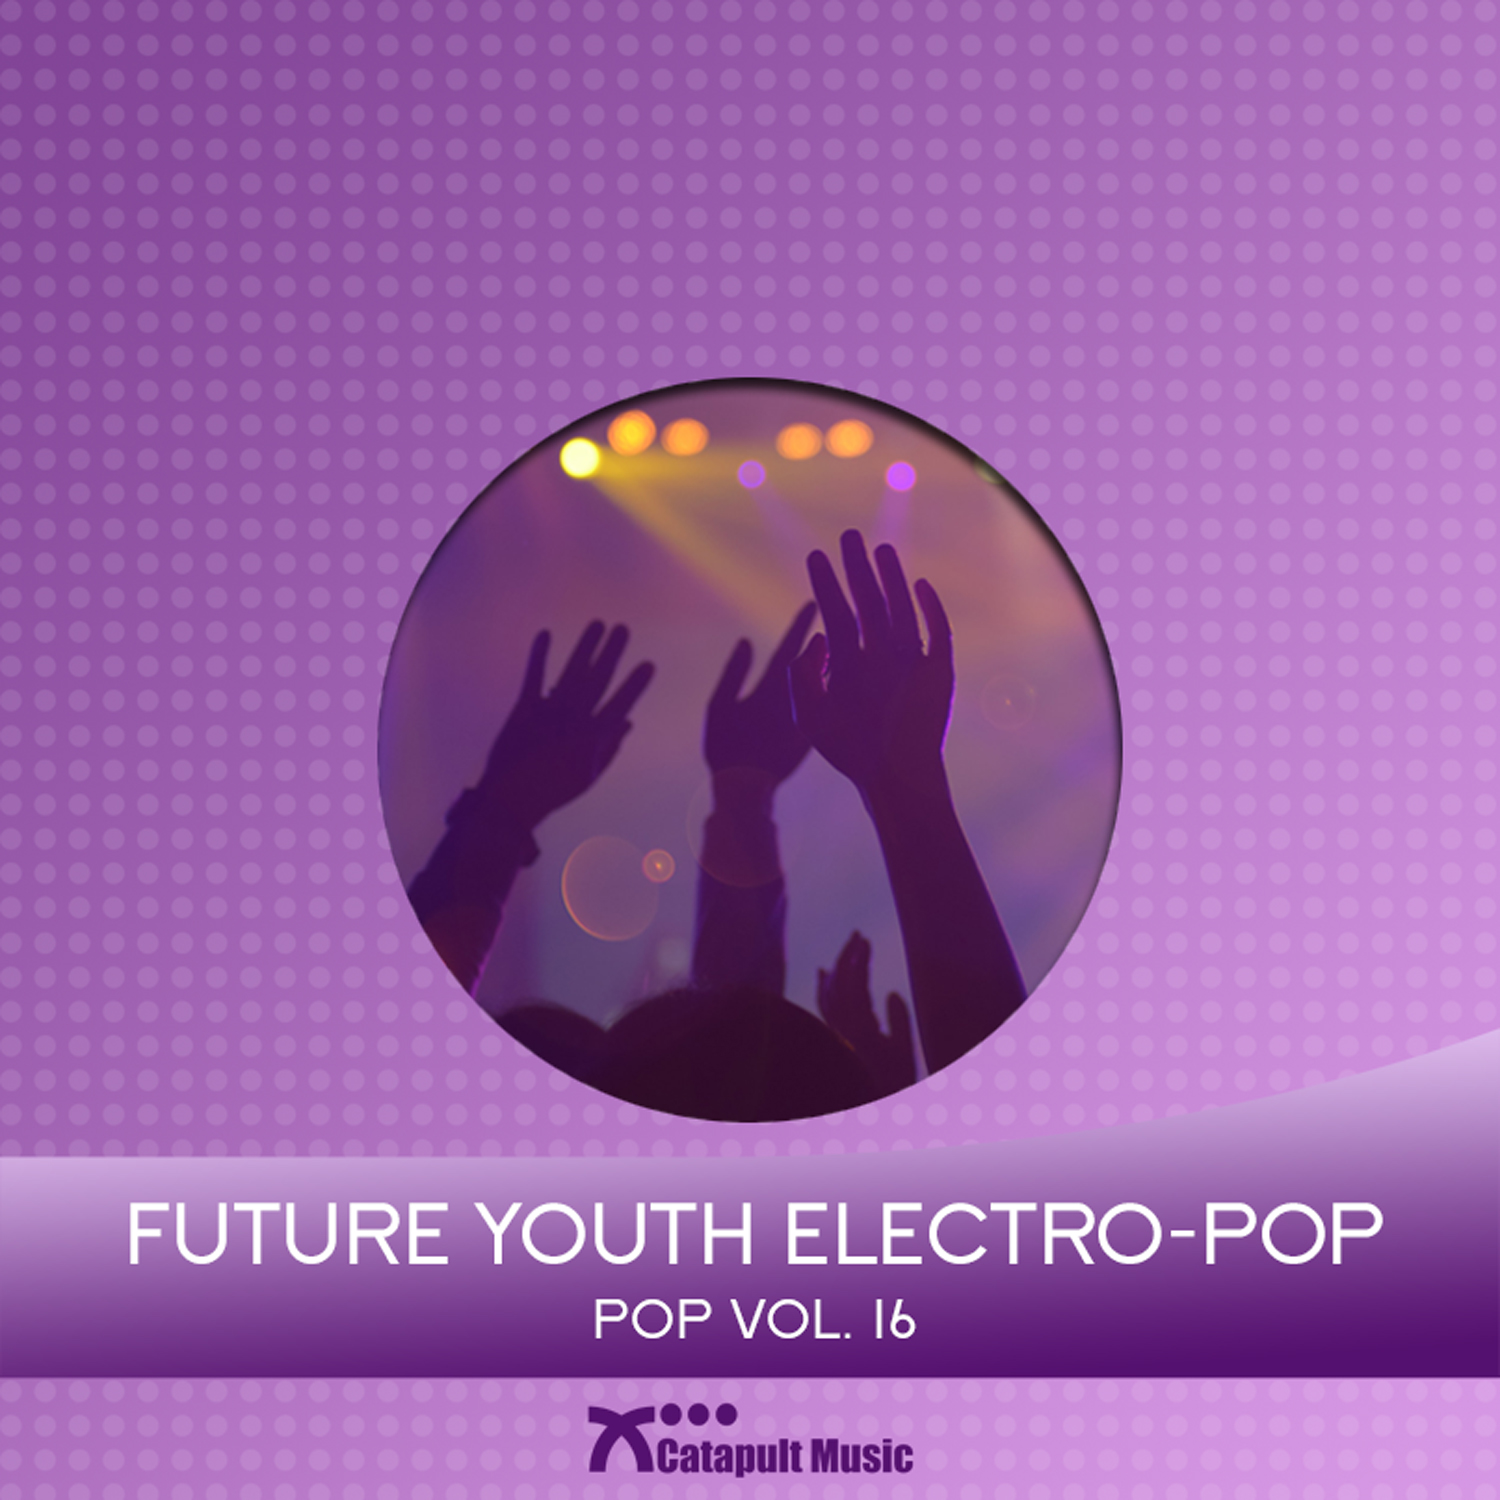 Future Youth Electro-Pop